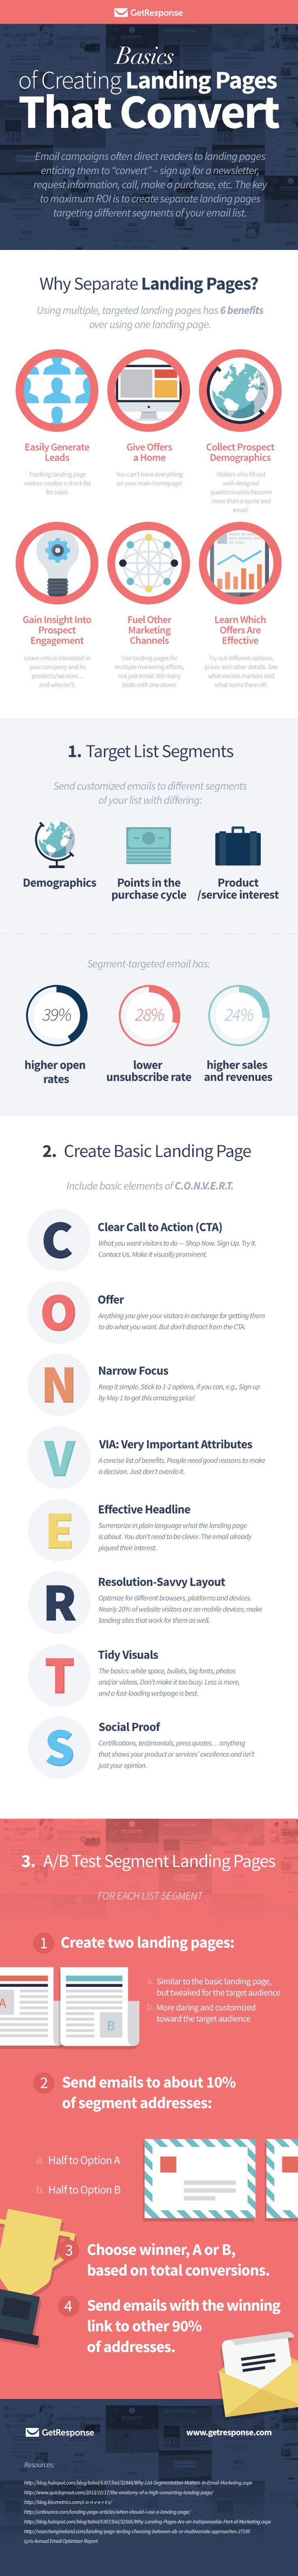 Creating Pages That Convert #Infographic - GetResponse Blog - Email Marketing Tips